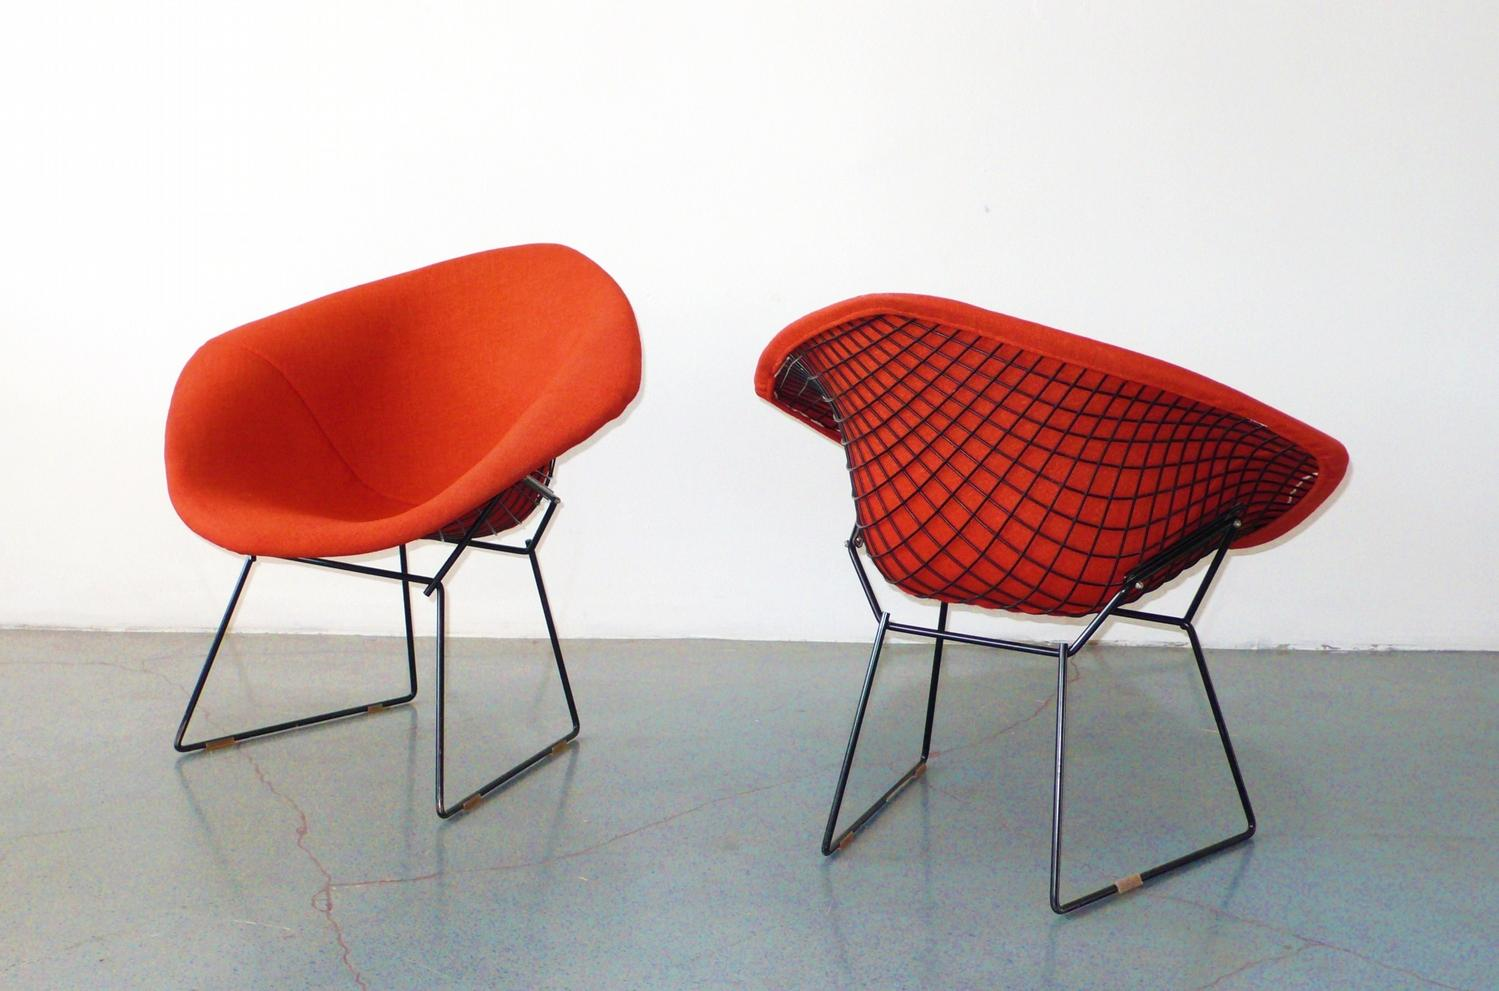 Harry Bertoia For Knoll Diamond Chairs, Pair C. 1950. Loading Zoom